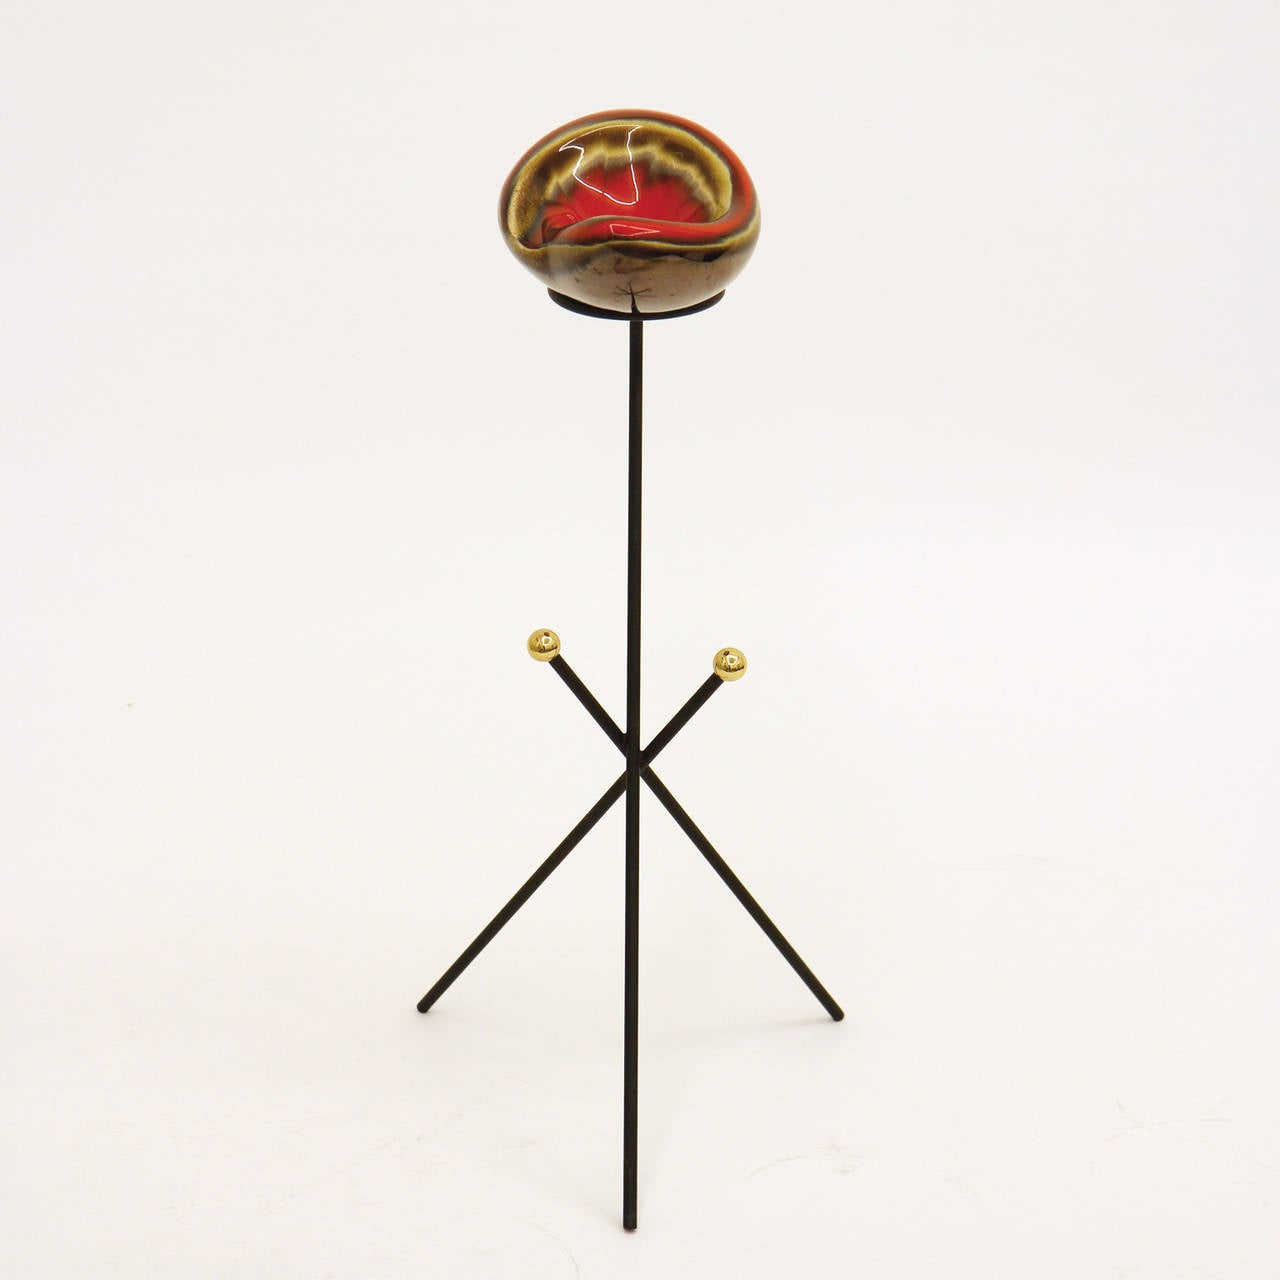 Mid-Century Modern French Modernist Tripod Ashtray or Catch-All, 1950s For Sale